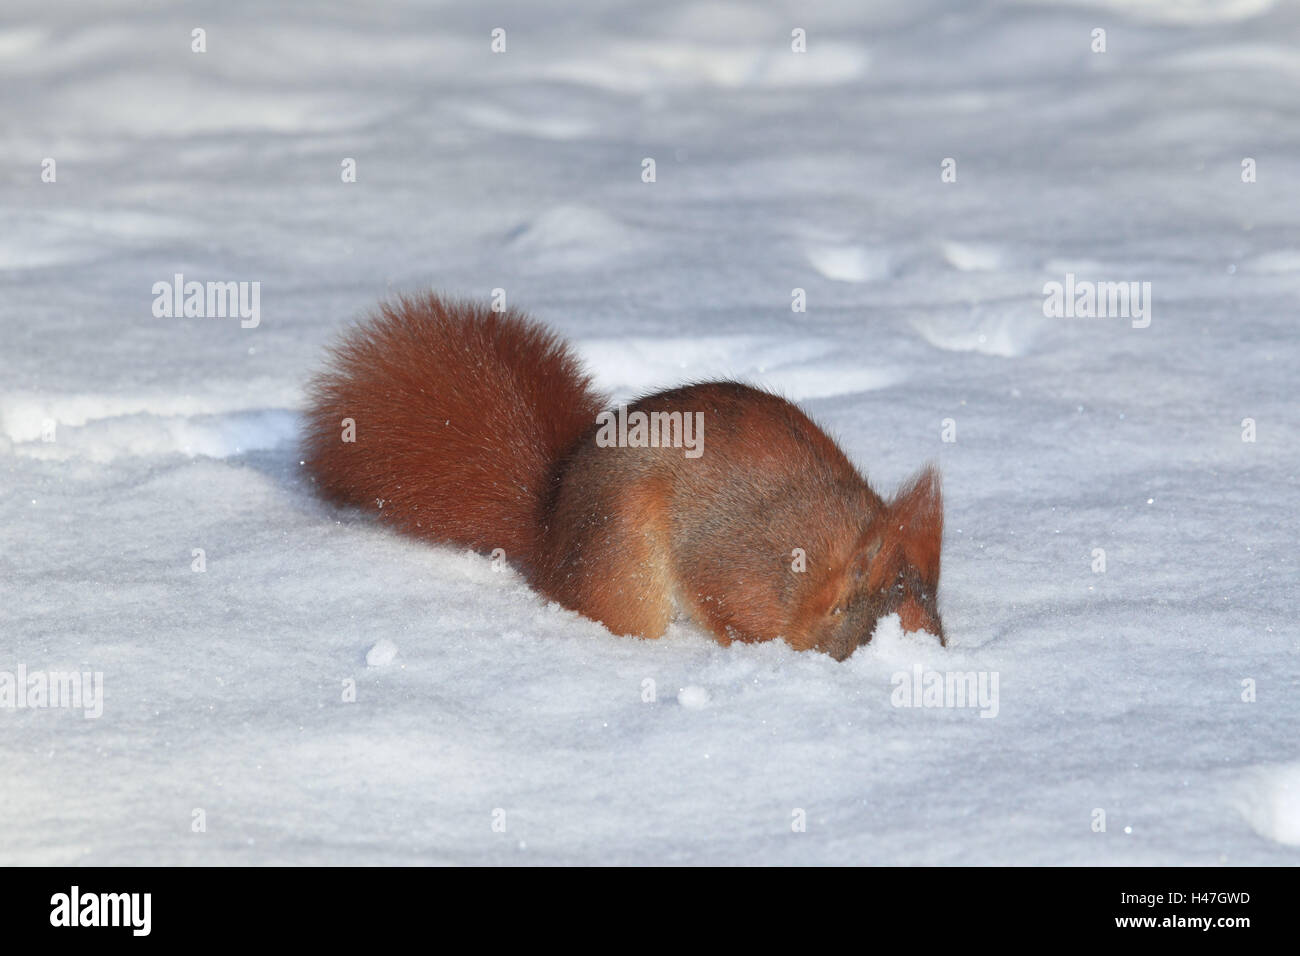 Squirrel in winter, food search, - Stock Image